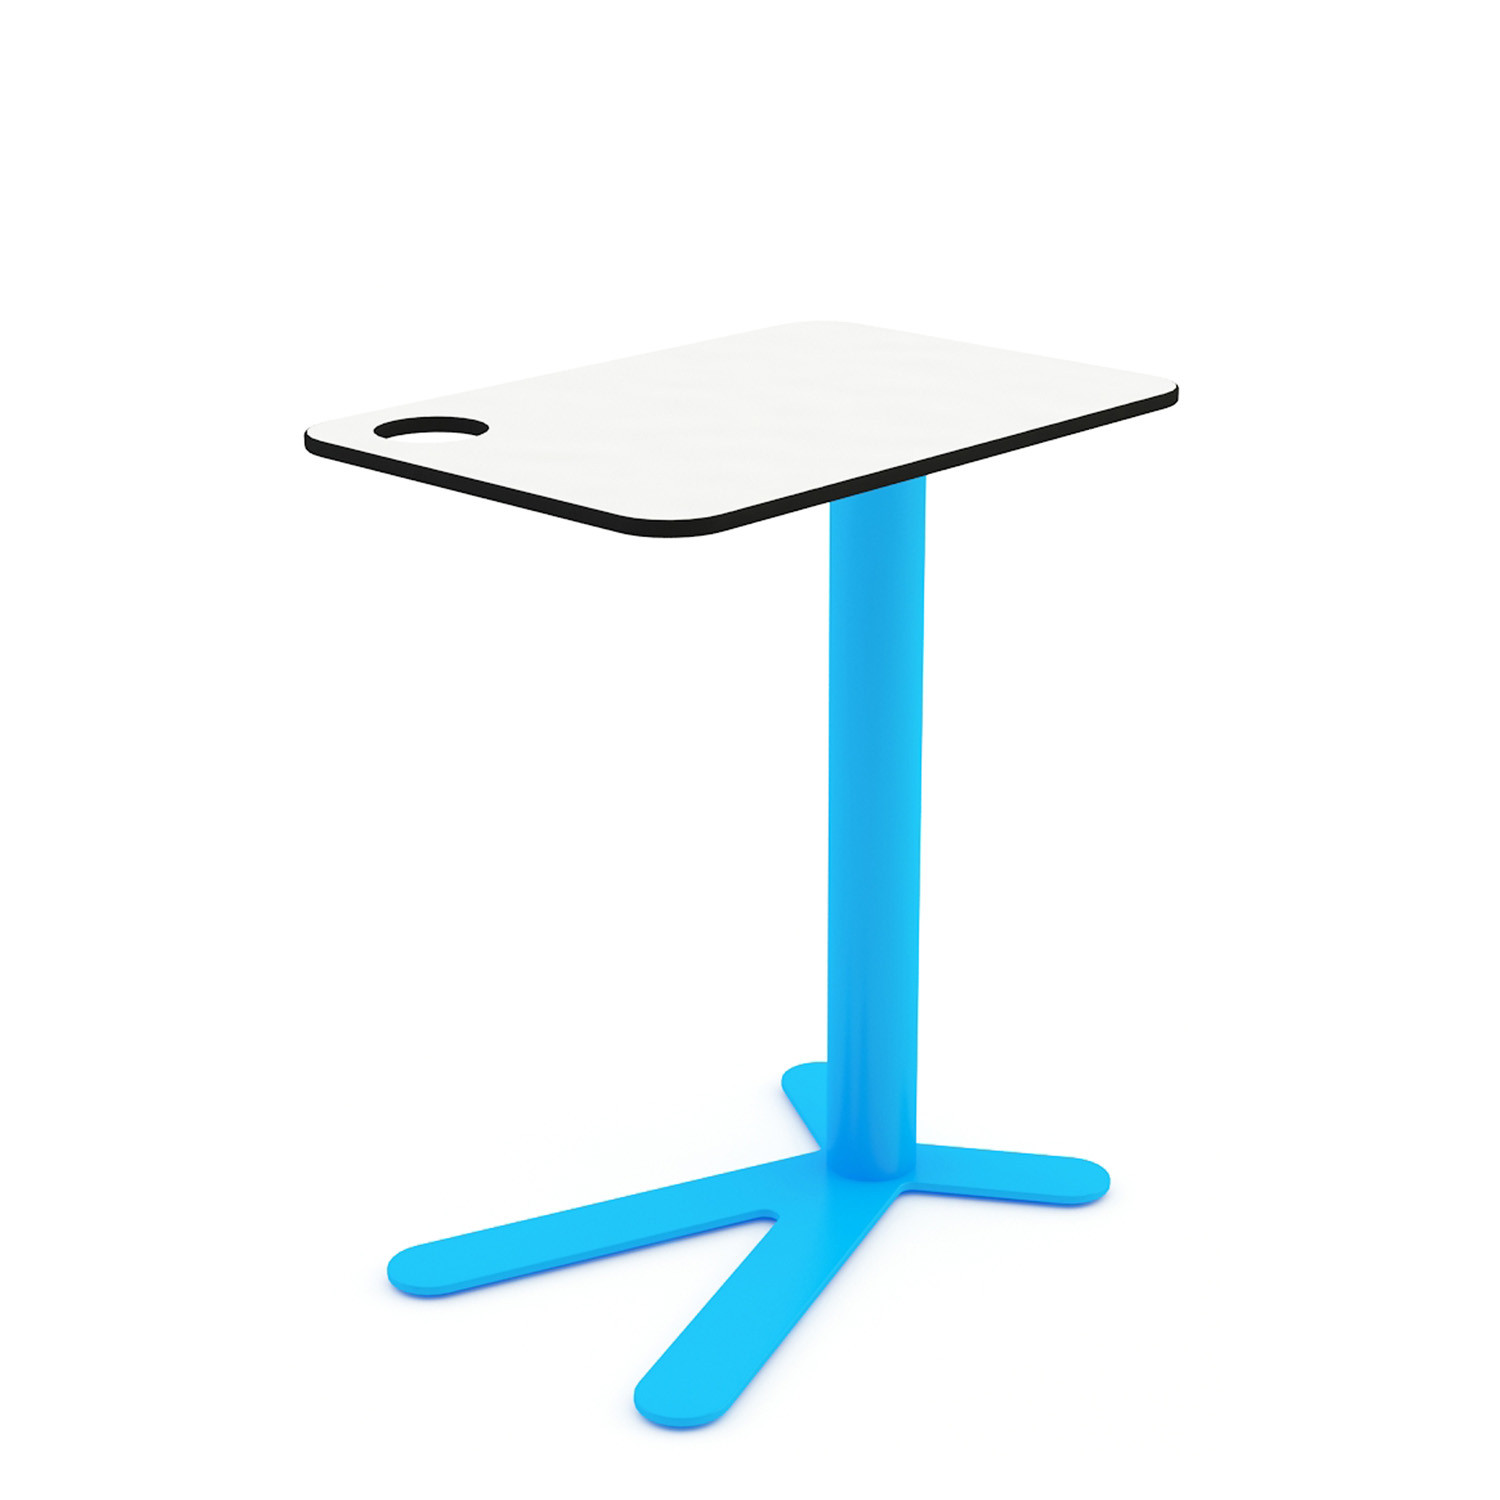 Space Chicken Table from Loook